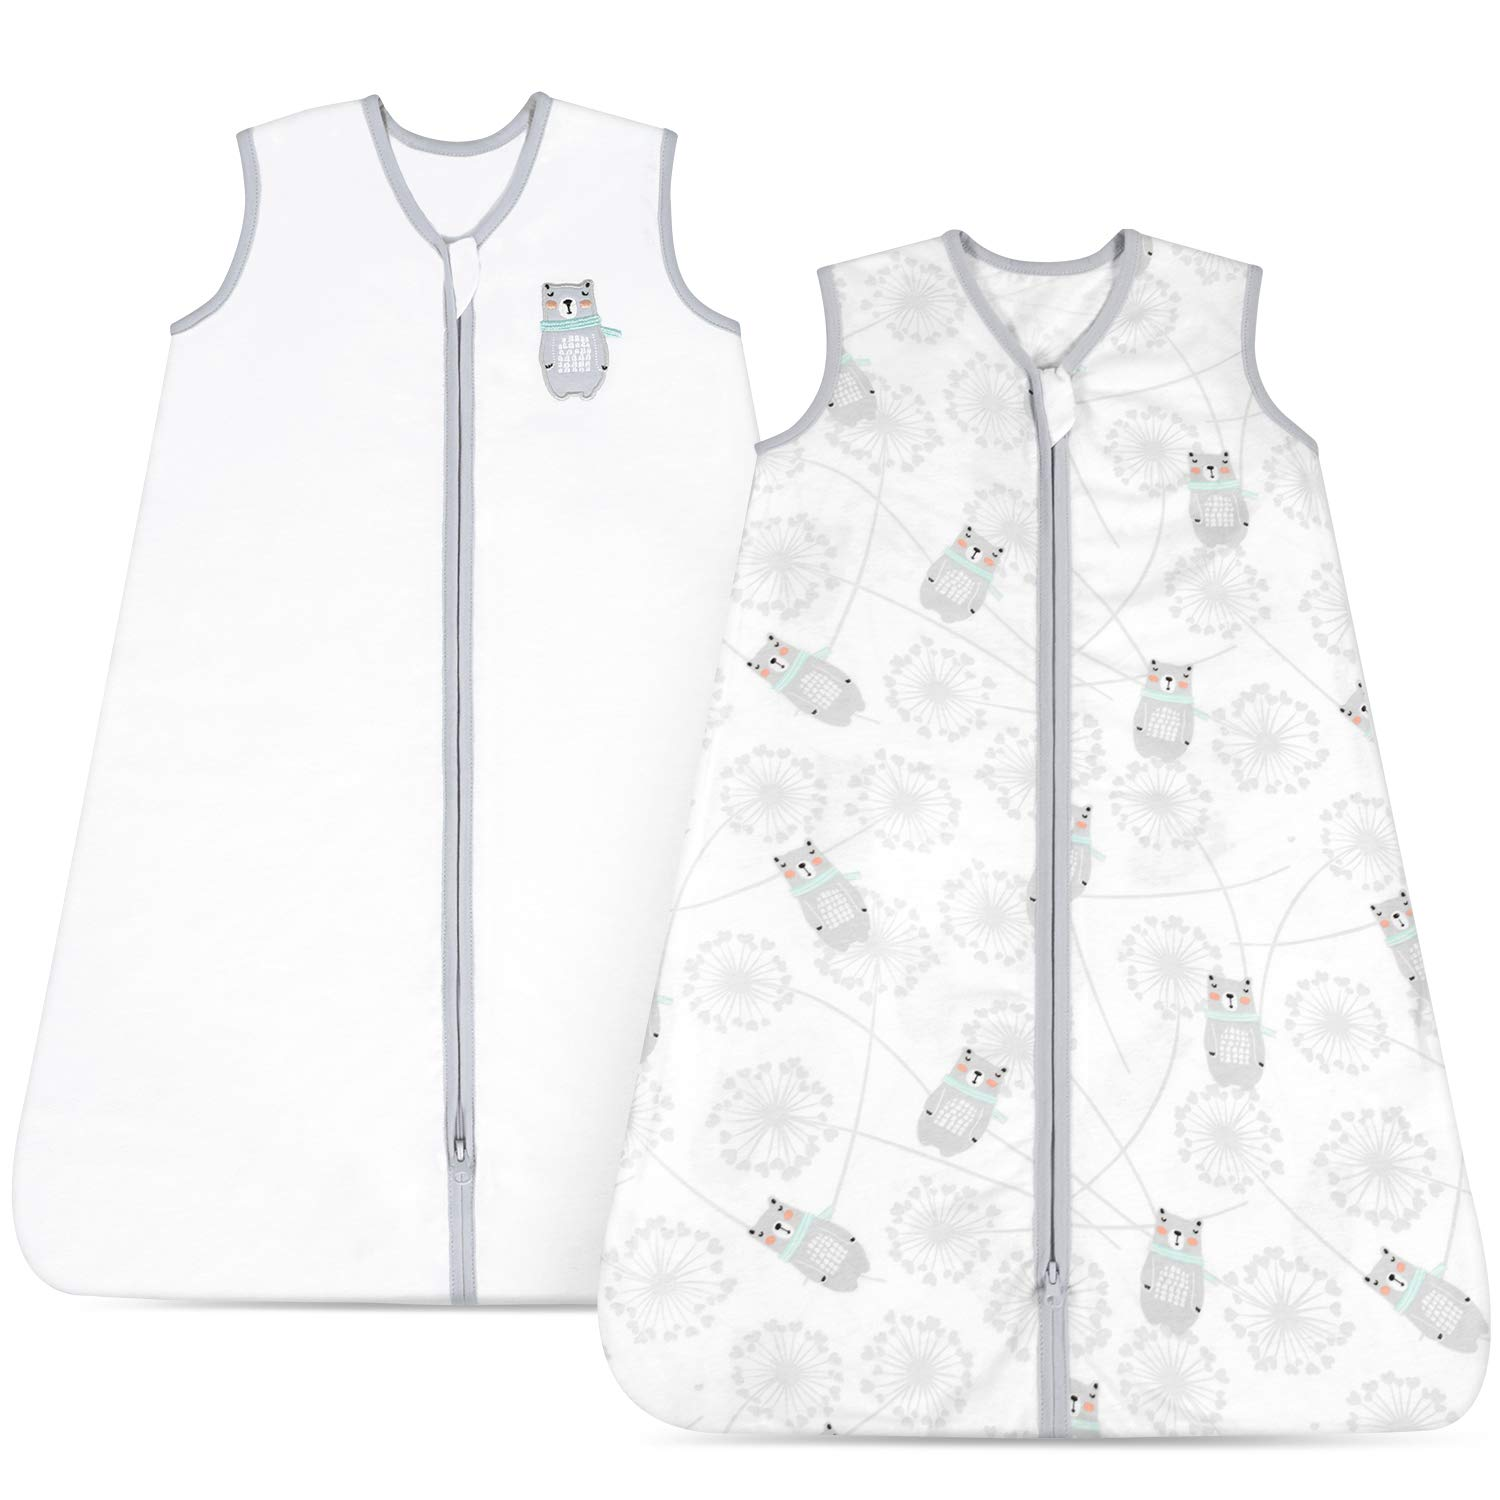 TILLYOU X-Large XL Breathable Cotton Baby Wearable Blanket with 2-Way Zipper, Super Soft Lightweight 2-Pack Sleeveless Sleep Bag Sack Unisex, Fits Infants Newborns Age 18-24 Months, Gray Bear & White